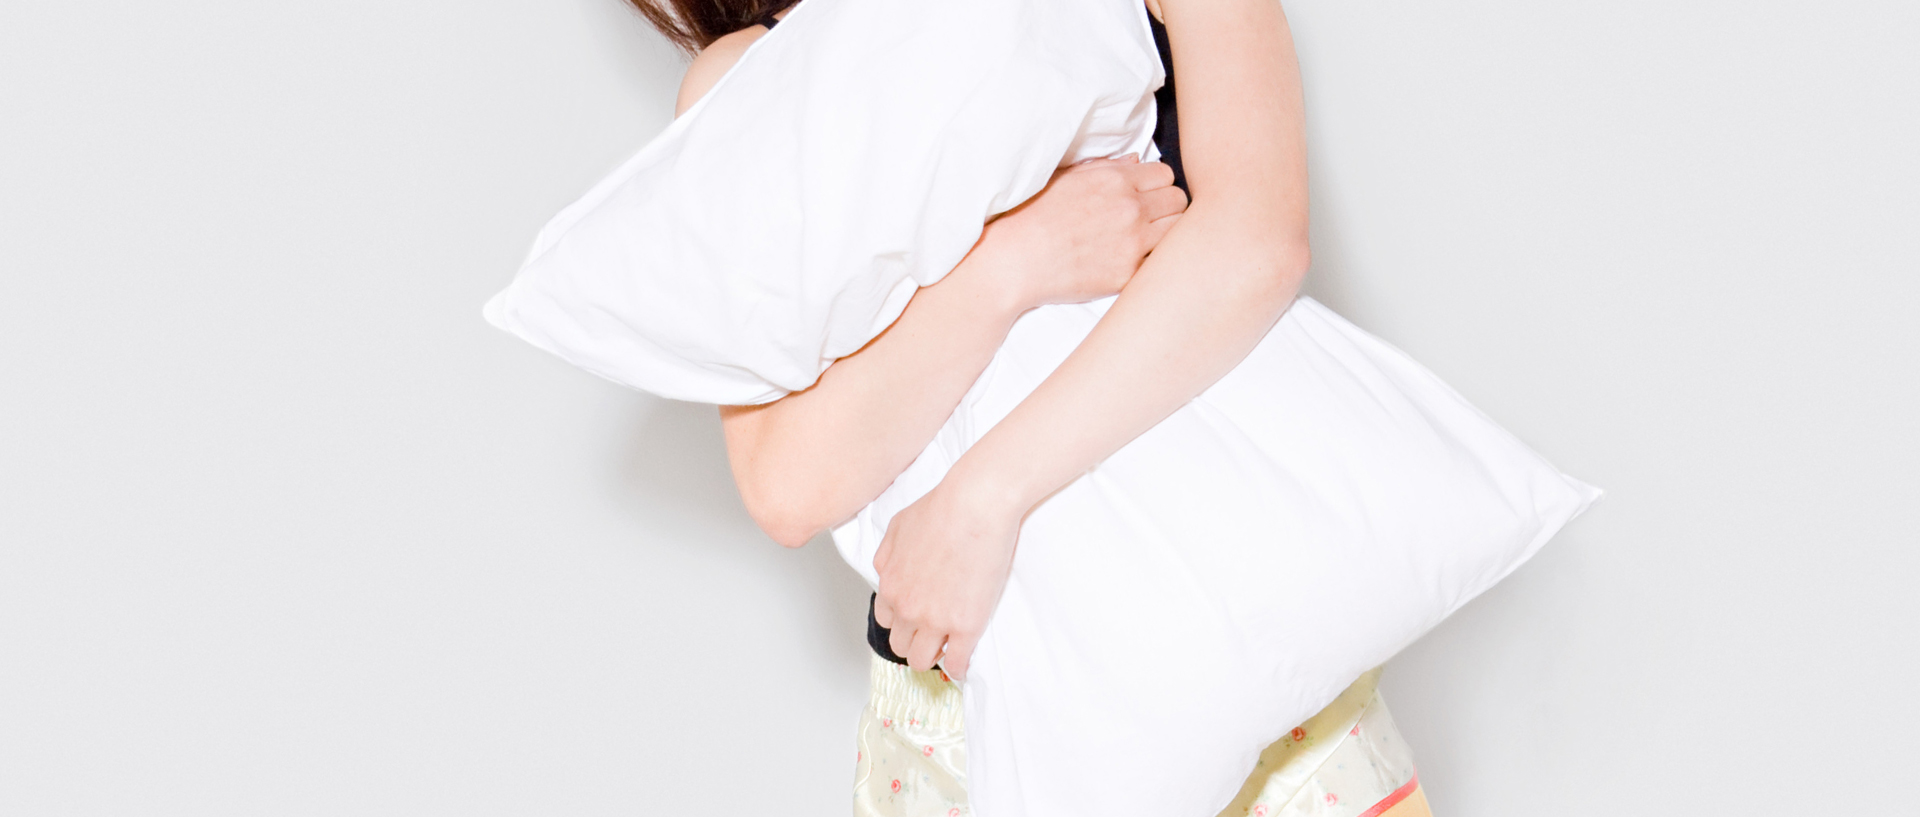 Firm Memory Foam Pillow The Best Pillow For The Way You Sleep Consumer Reports